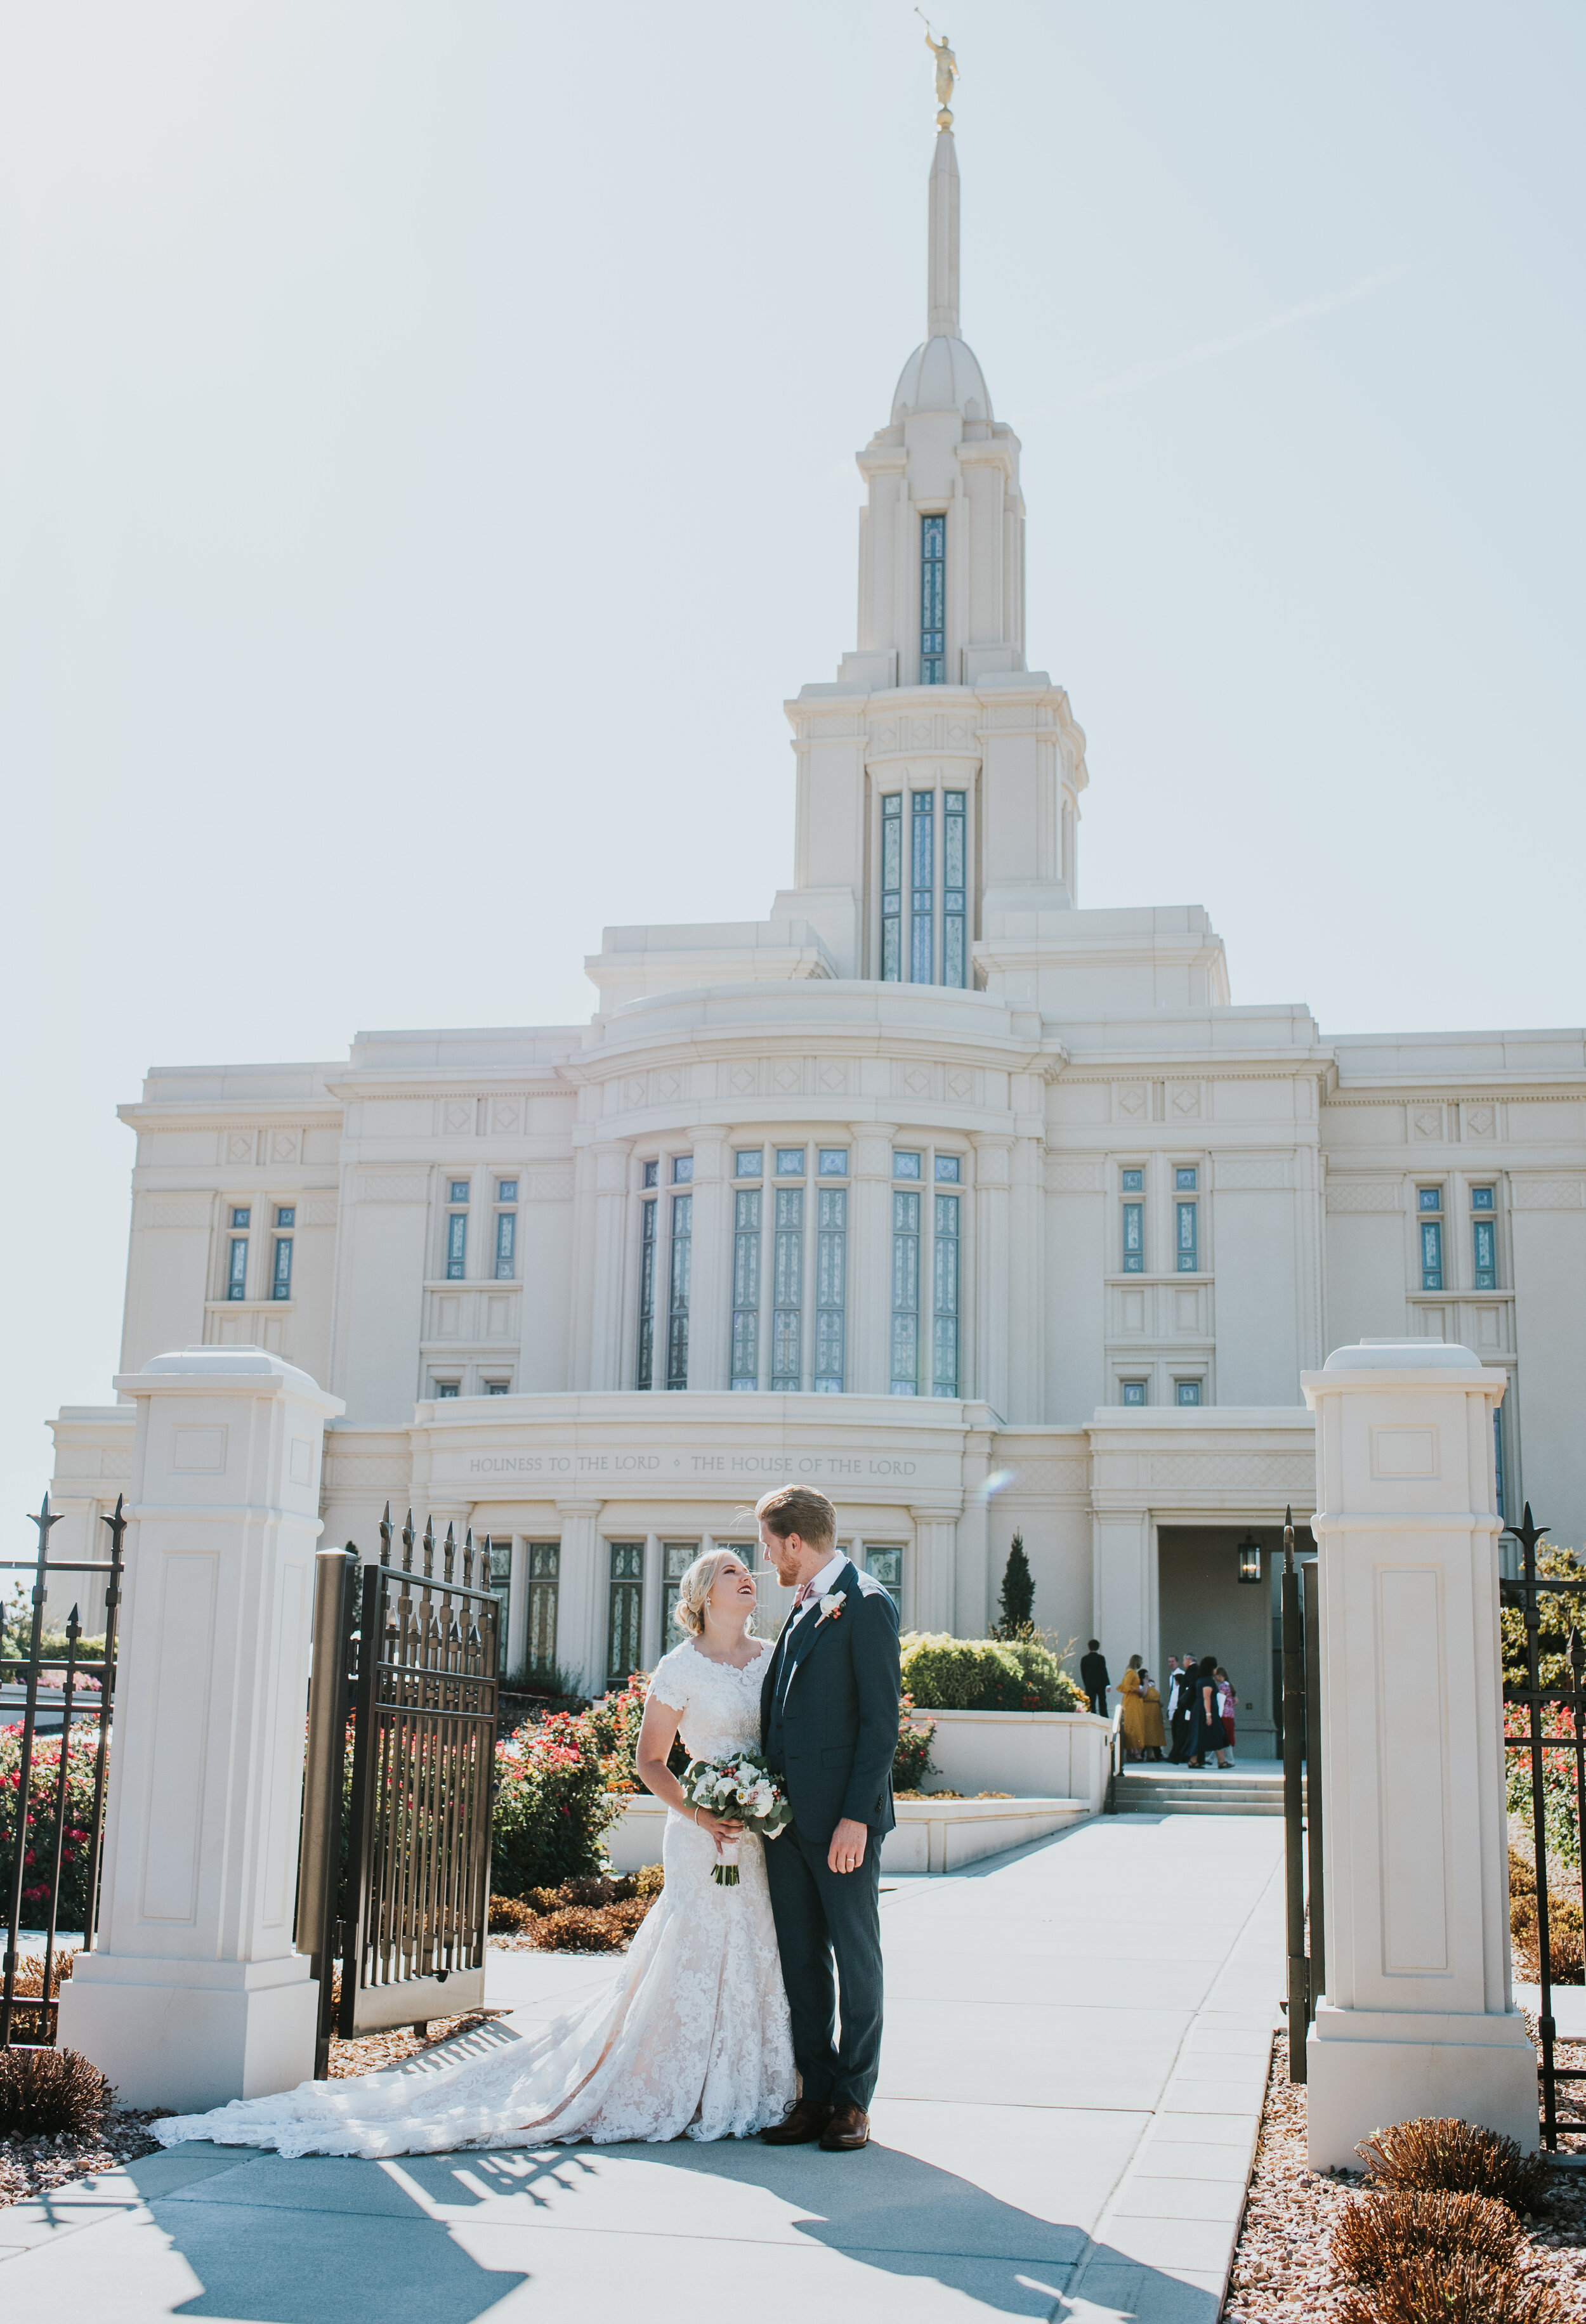 Payson Utah Temple Payson utah sealed for eternity just married bridal pictures pictures outside the temple wedding day suit and tie happy couple couple posing outside the temple modest wedding dress wedding flowers couple posing ideas couple standing posing ideas bridal hair inspiration utah photographer #utahweddingphotographer #weddingphotography #bride #groom #love #utahvalleyweddingphotographer #ldstemple #templewedding #ldsbride #weddingdress #couplegoals #relationshipgoals